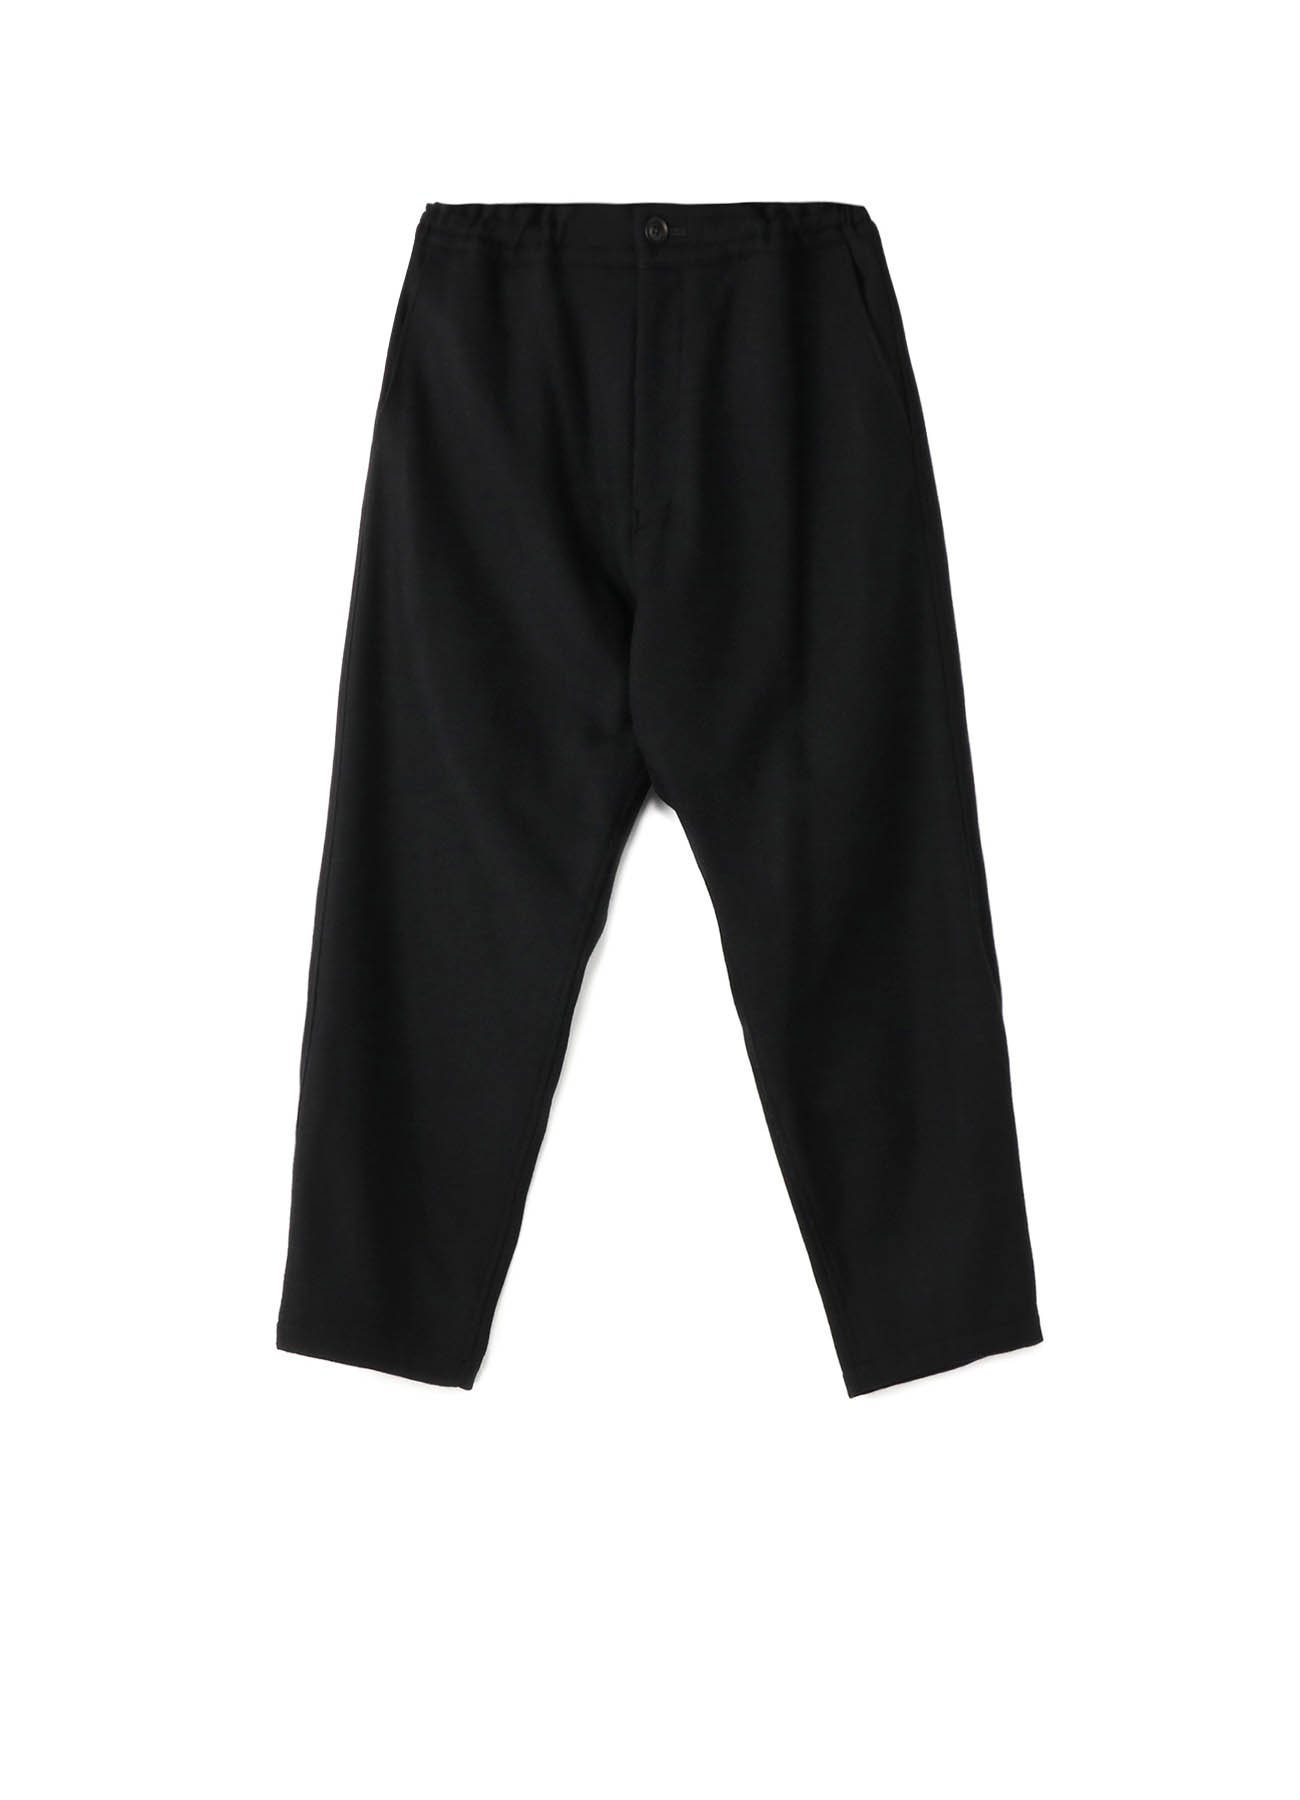 Twill Flannel Ninja Pants